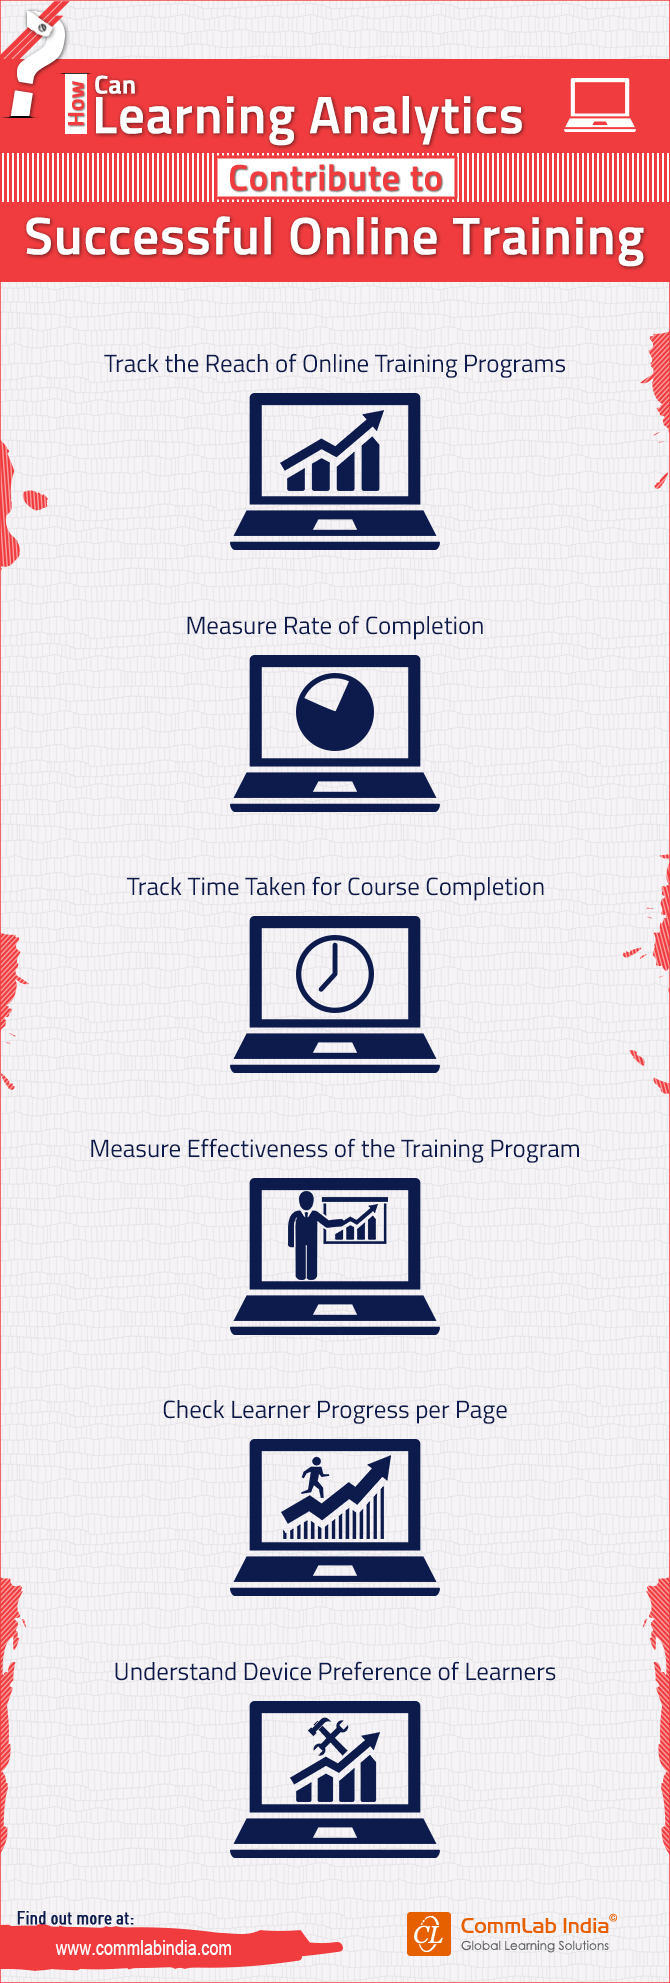 How Can Learning Analytics Contribute to Successful Online Training [Infographic]